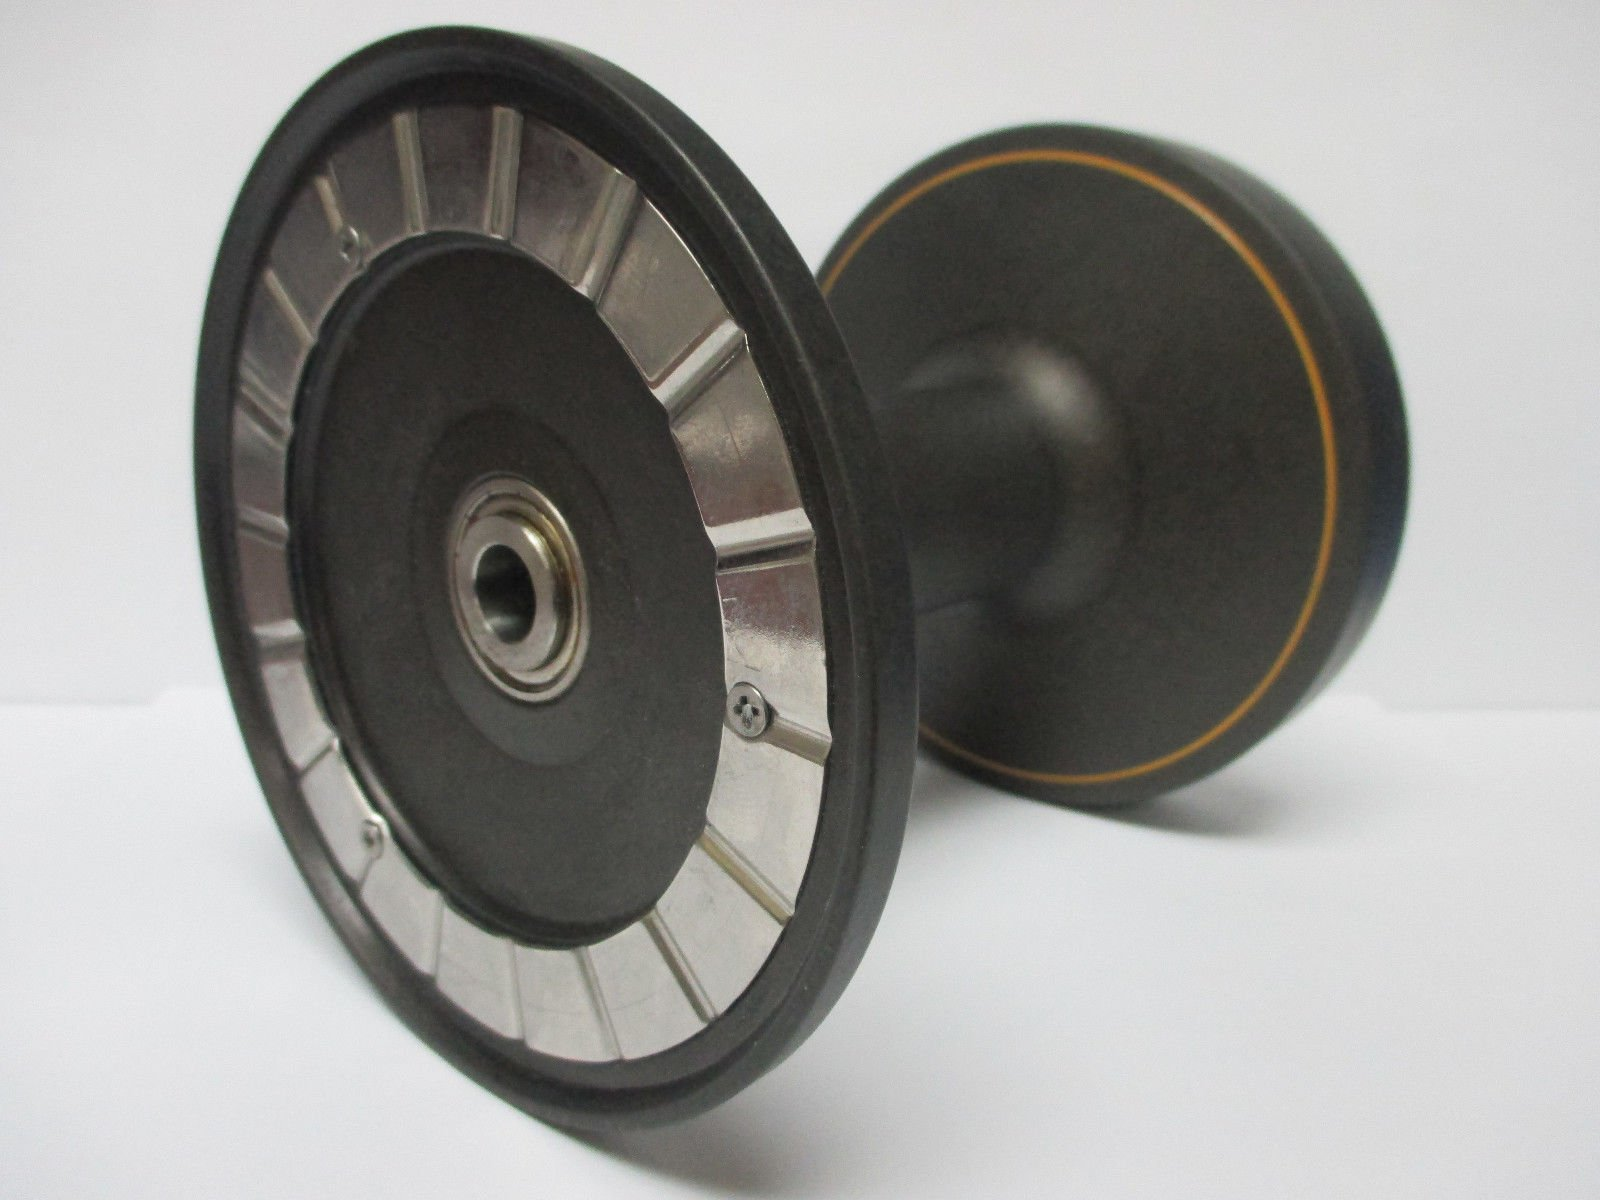 DUEL BIG GAME REEL PART - 12/0 WS Two Speed 12/0 WS Wide - Spool Assembly by Duel